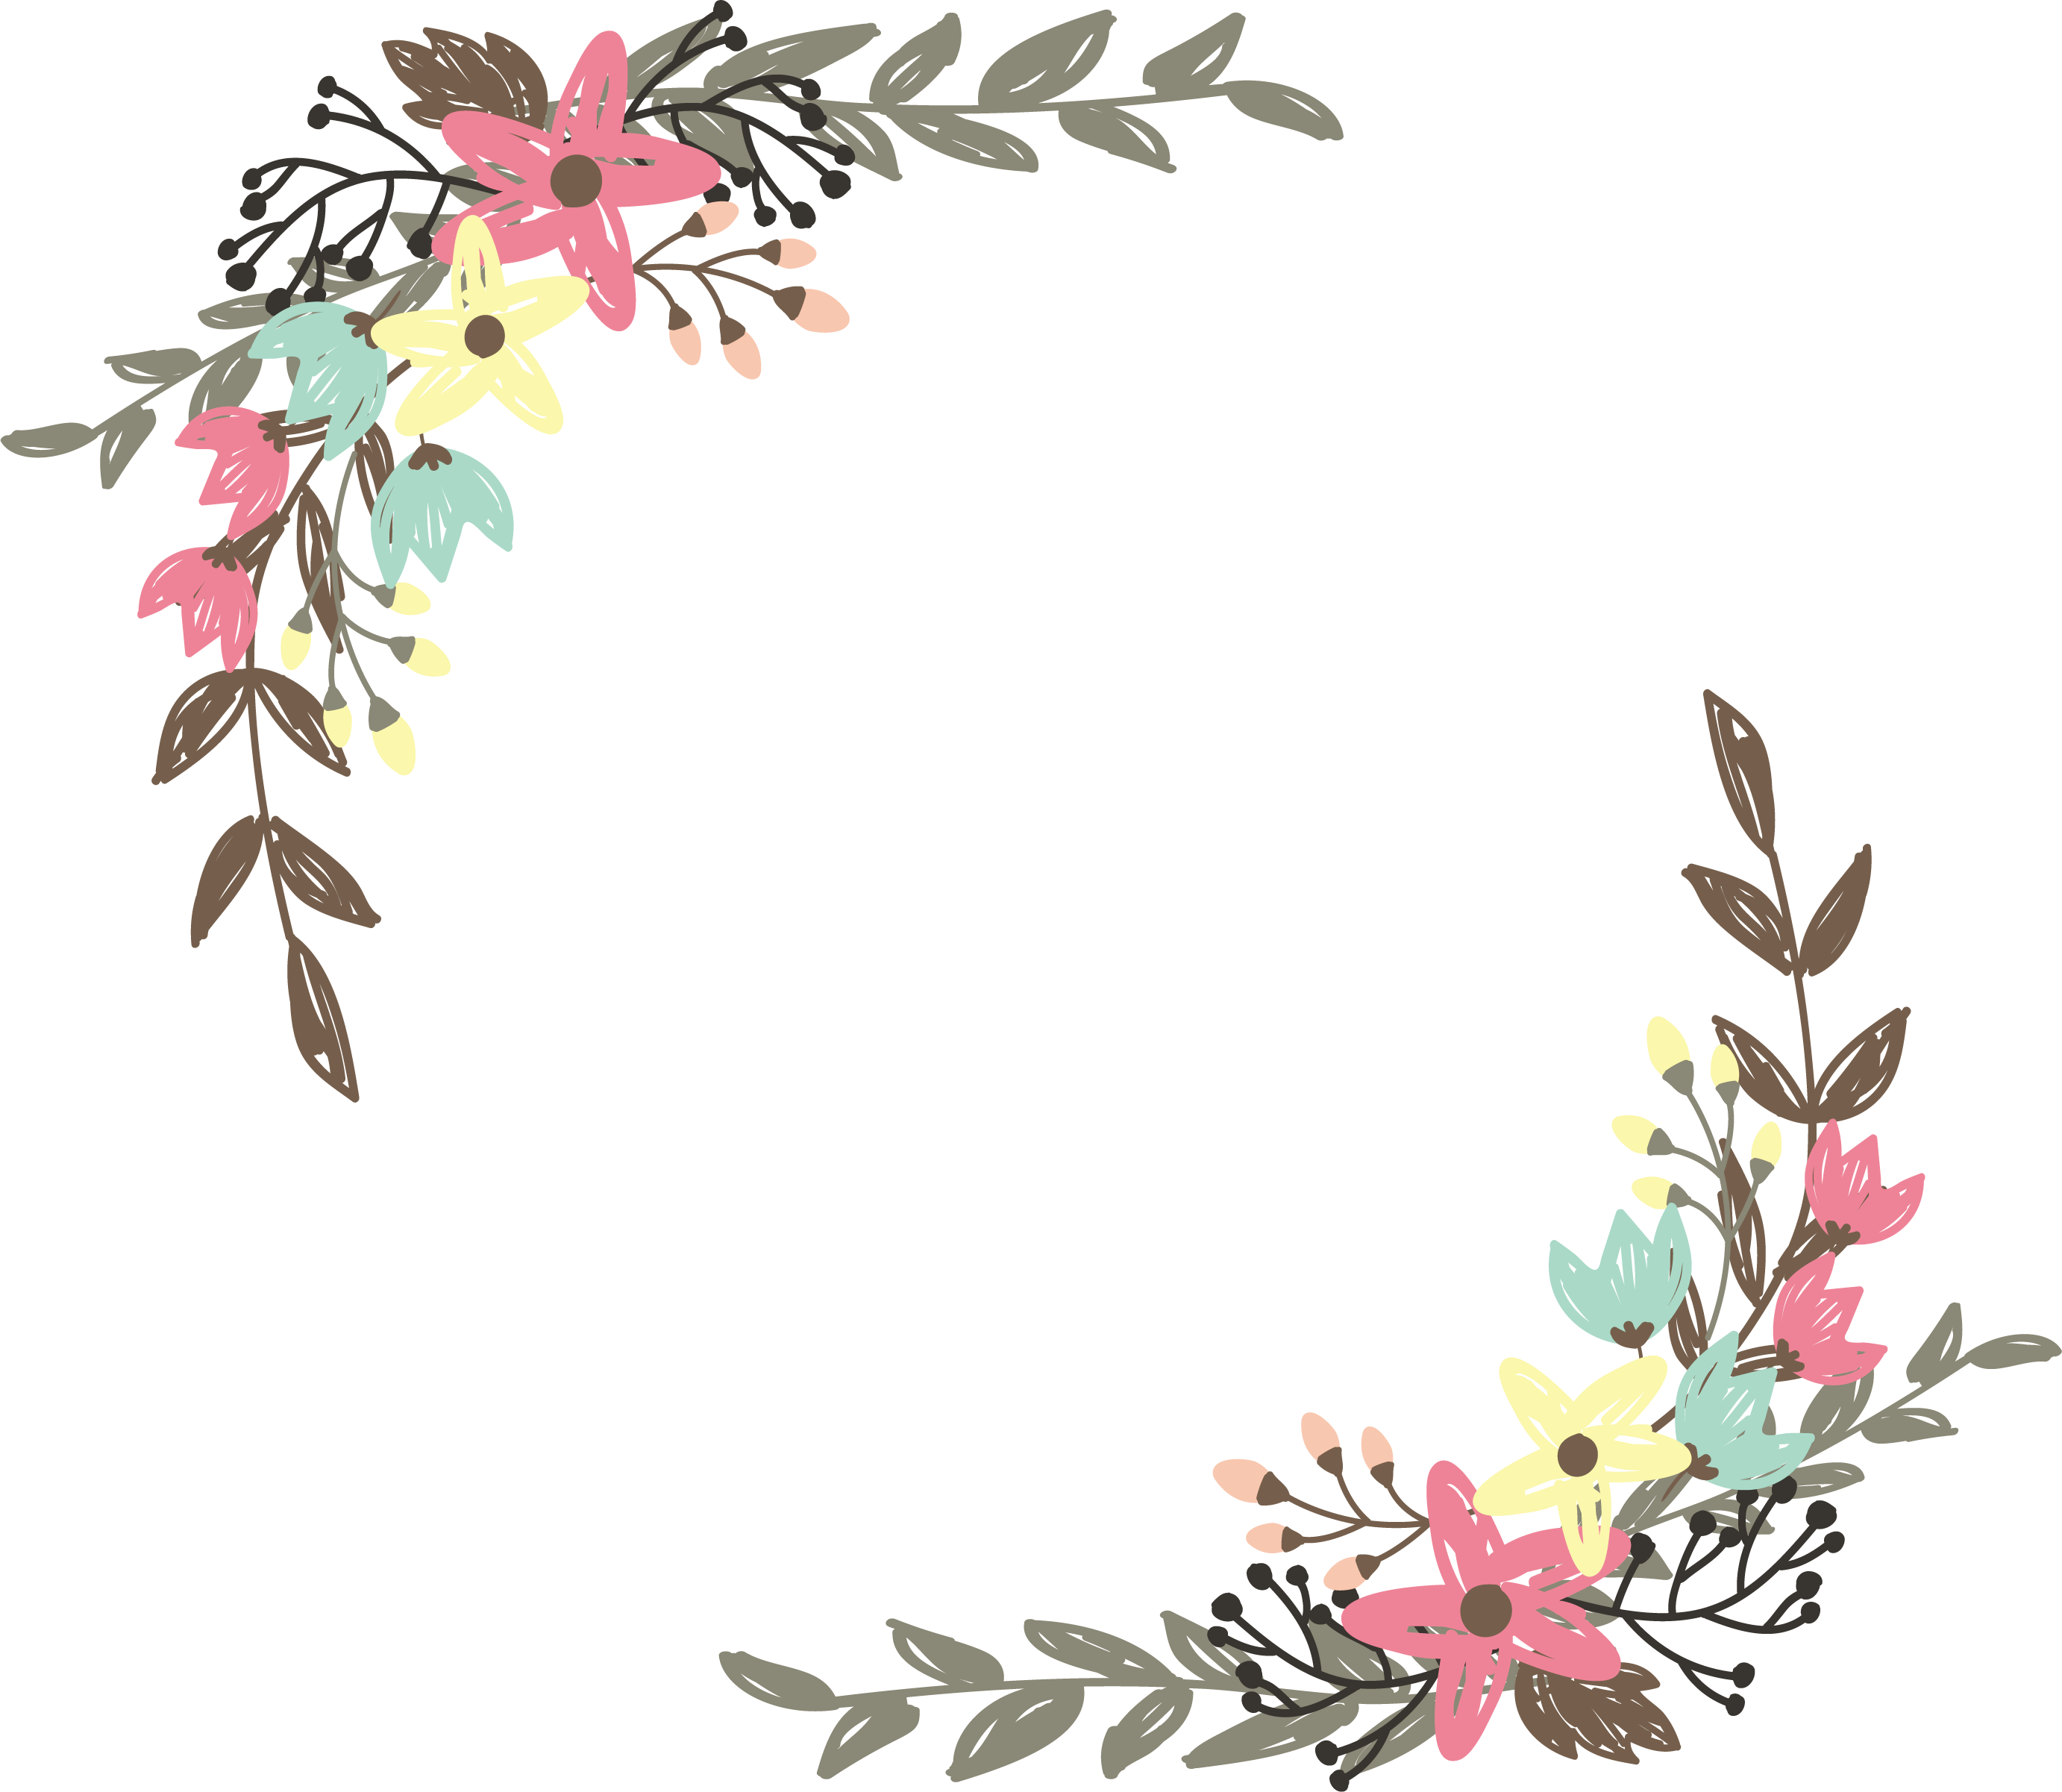 Flower borders clipart images gallery for free download.